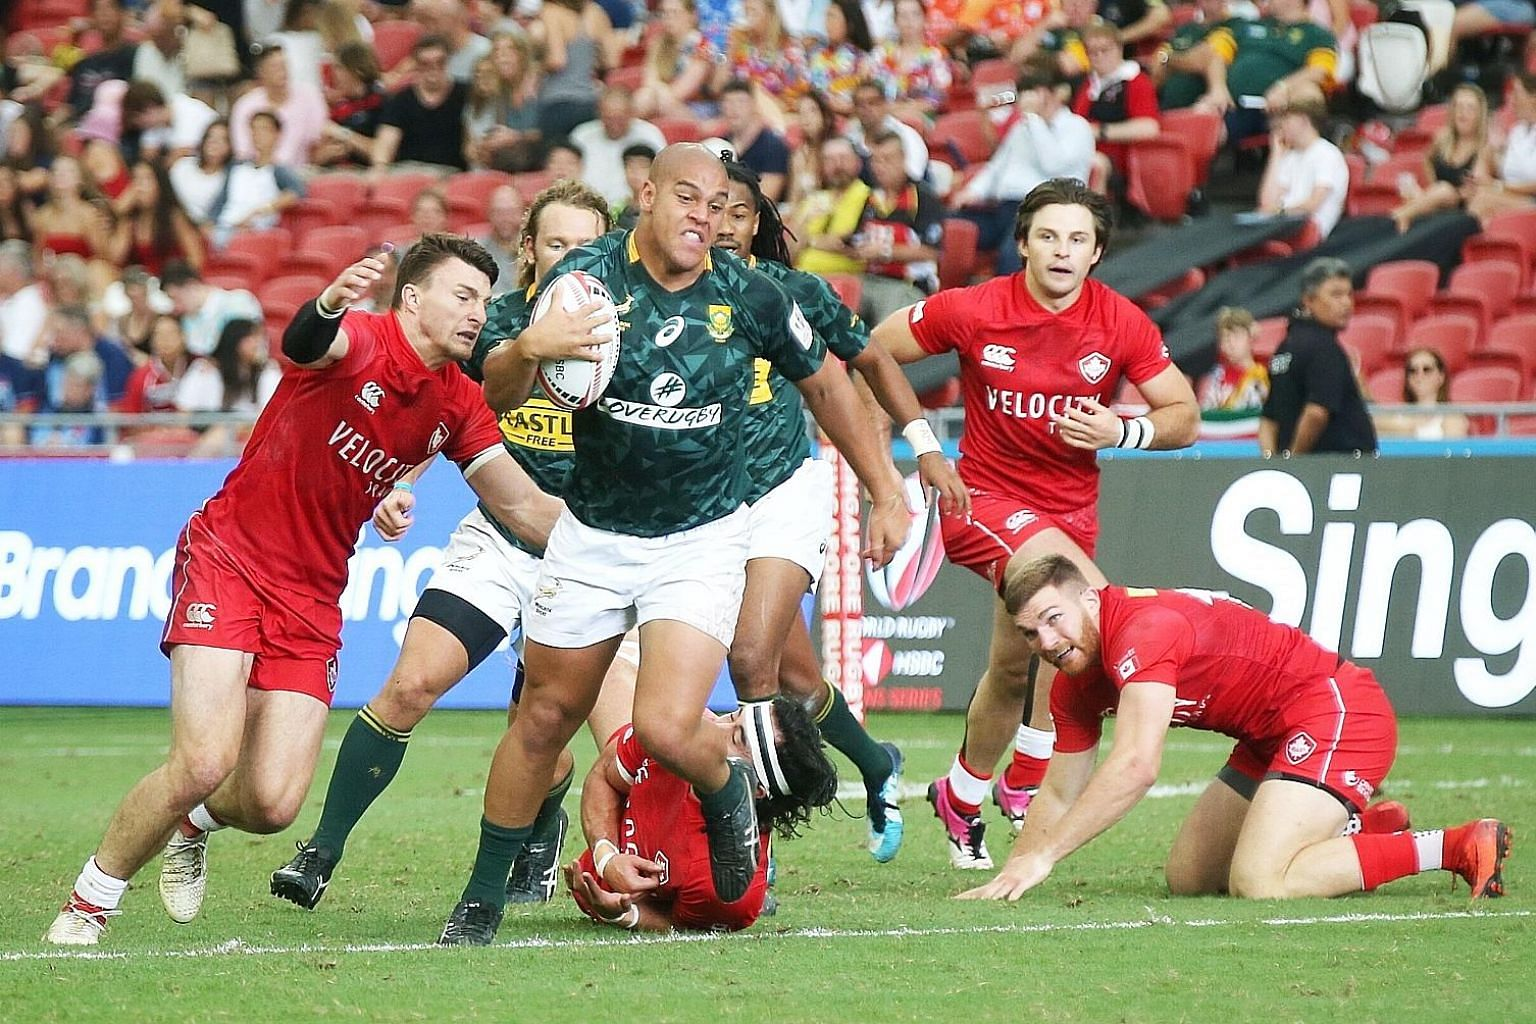 South Africa's Zain Davids makes ground against Canada in the HSBC World Rugby Sevens Series at the National Stadium yesterday. Canada, the defending champions, were beaten 26-12.